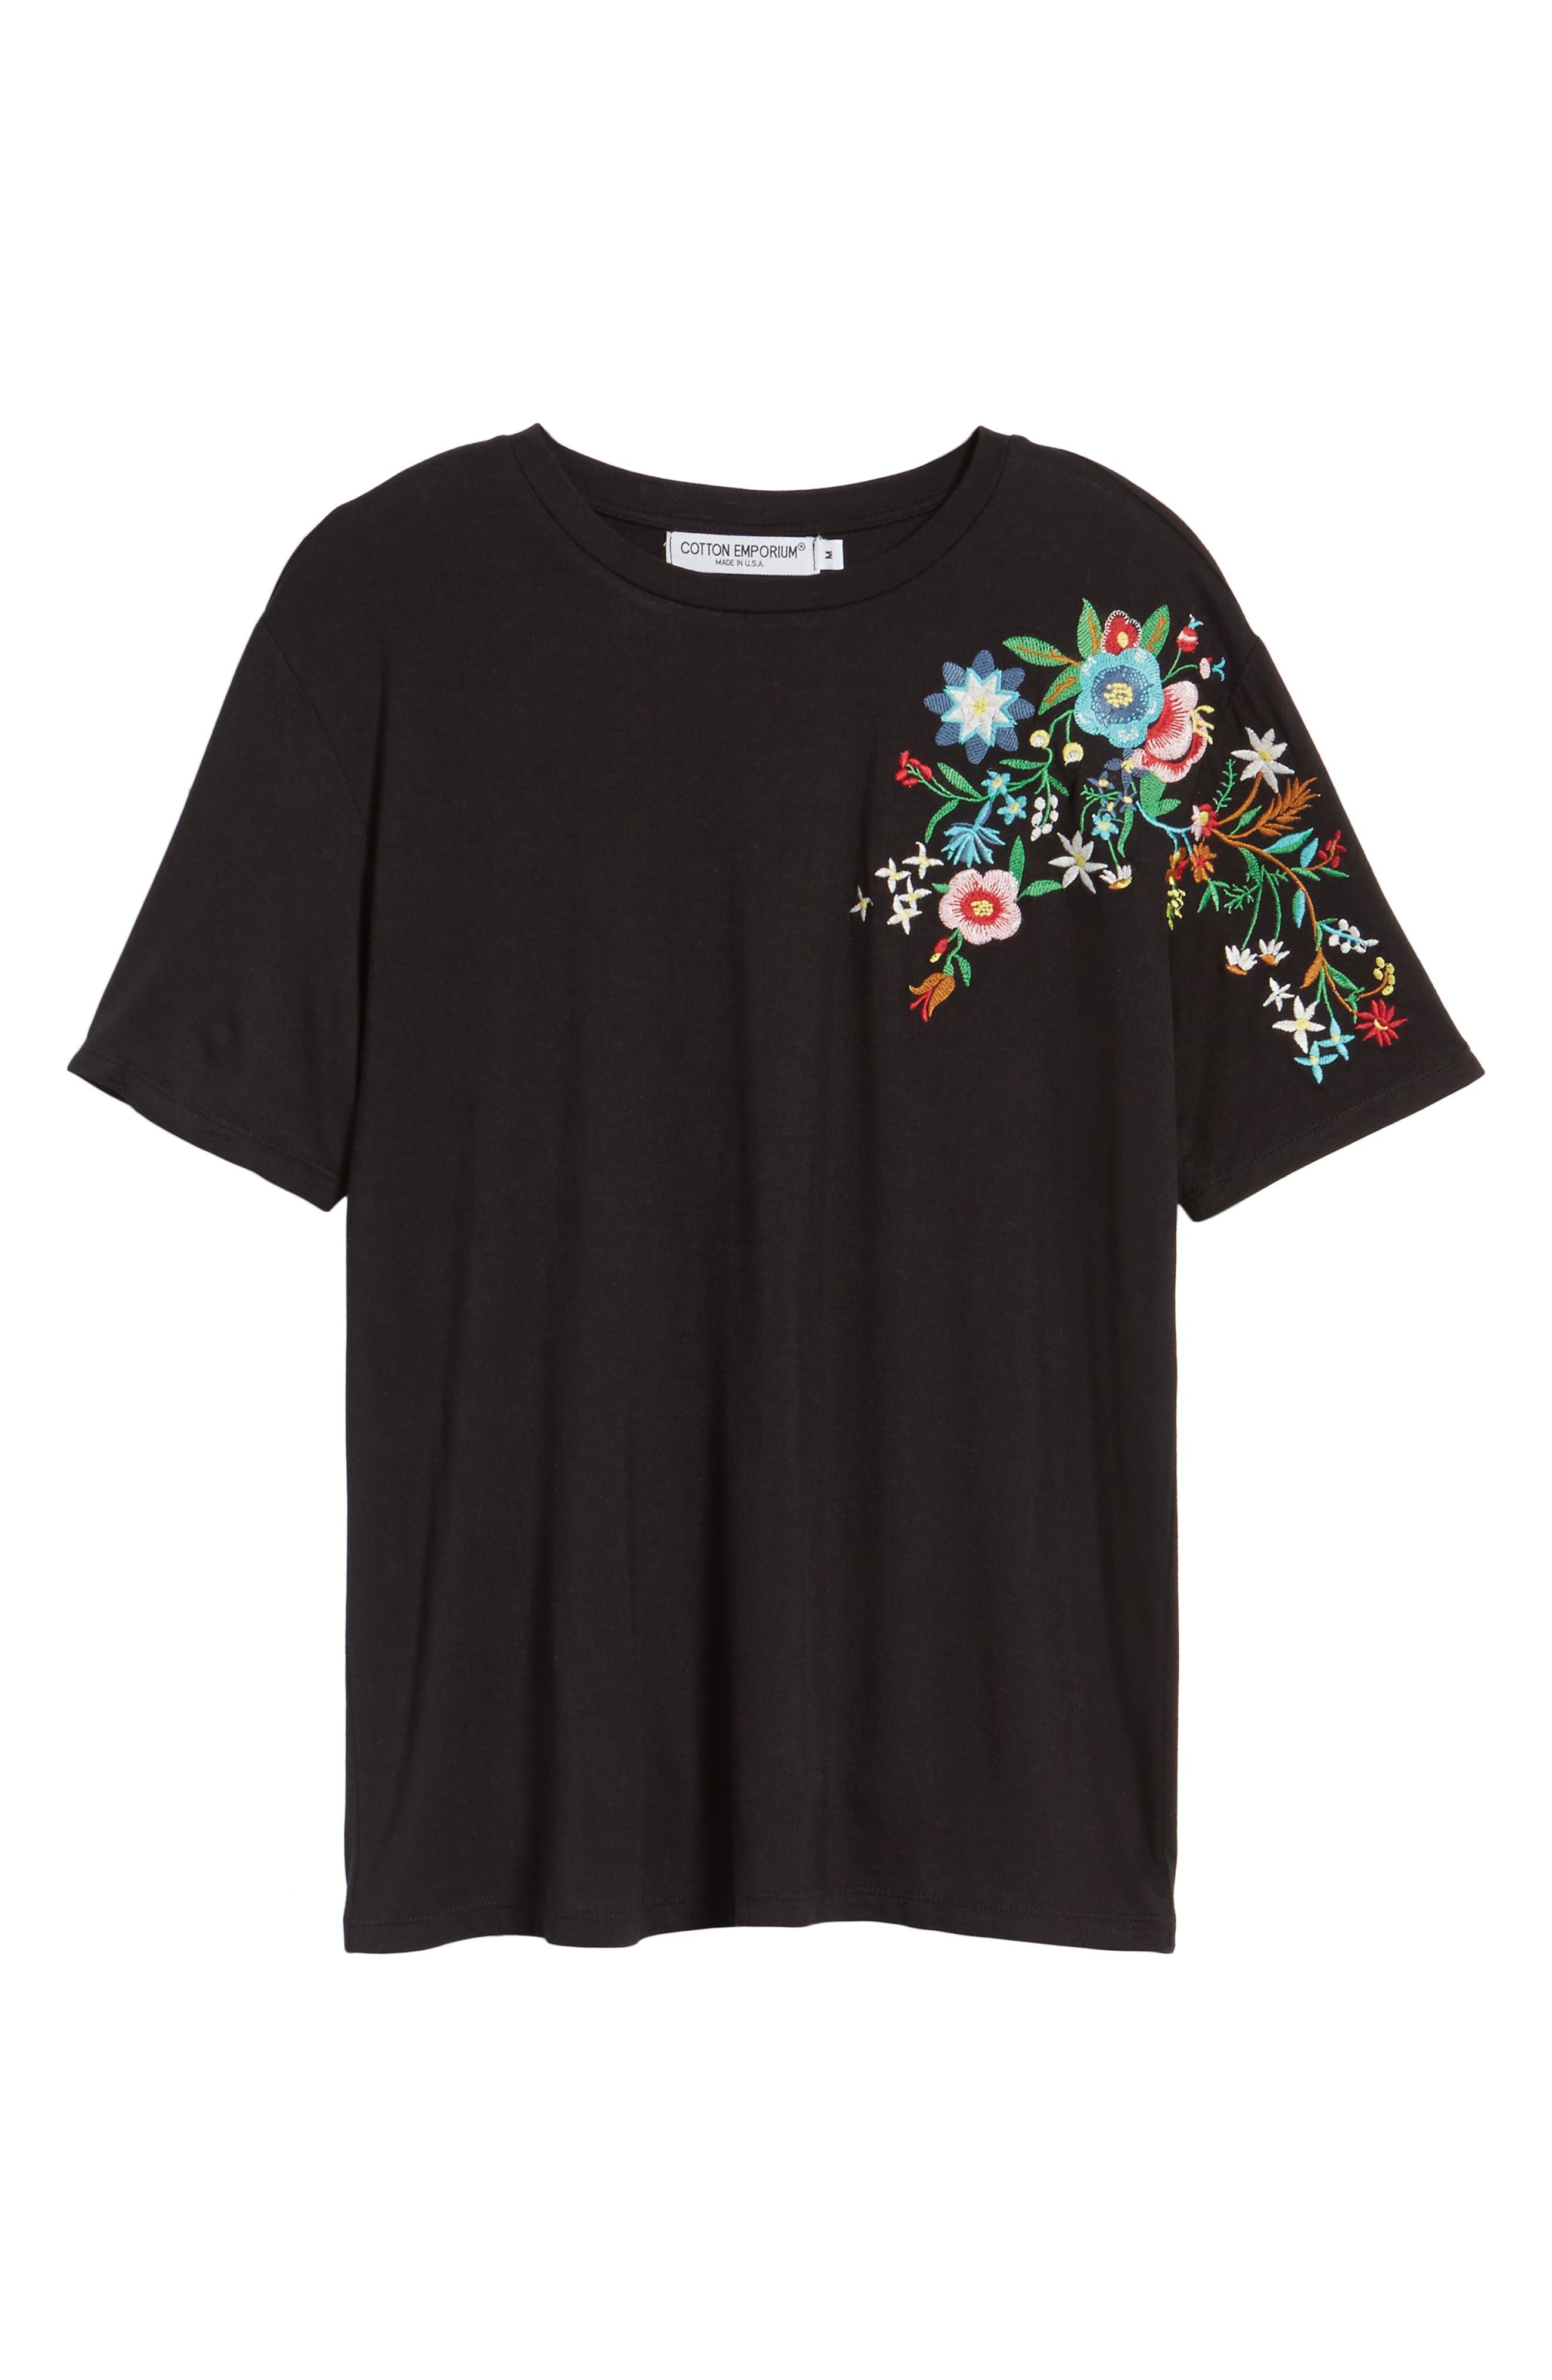 Floral Tee,                             Alternate thumbnail 6, color,                             Black